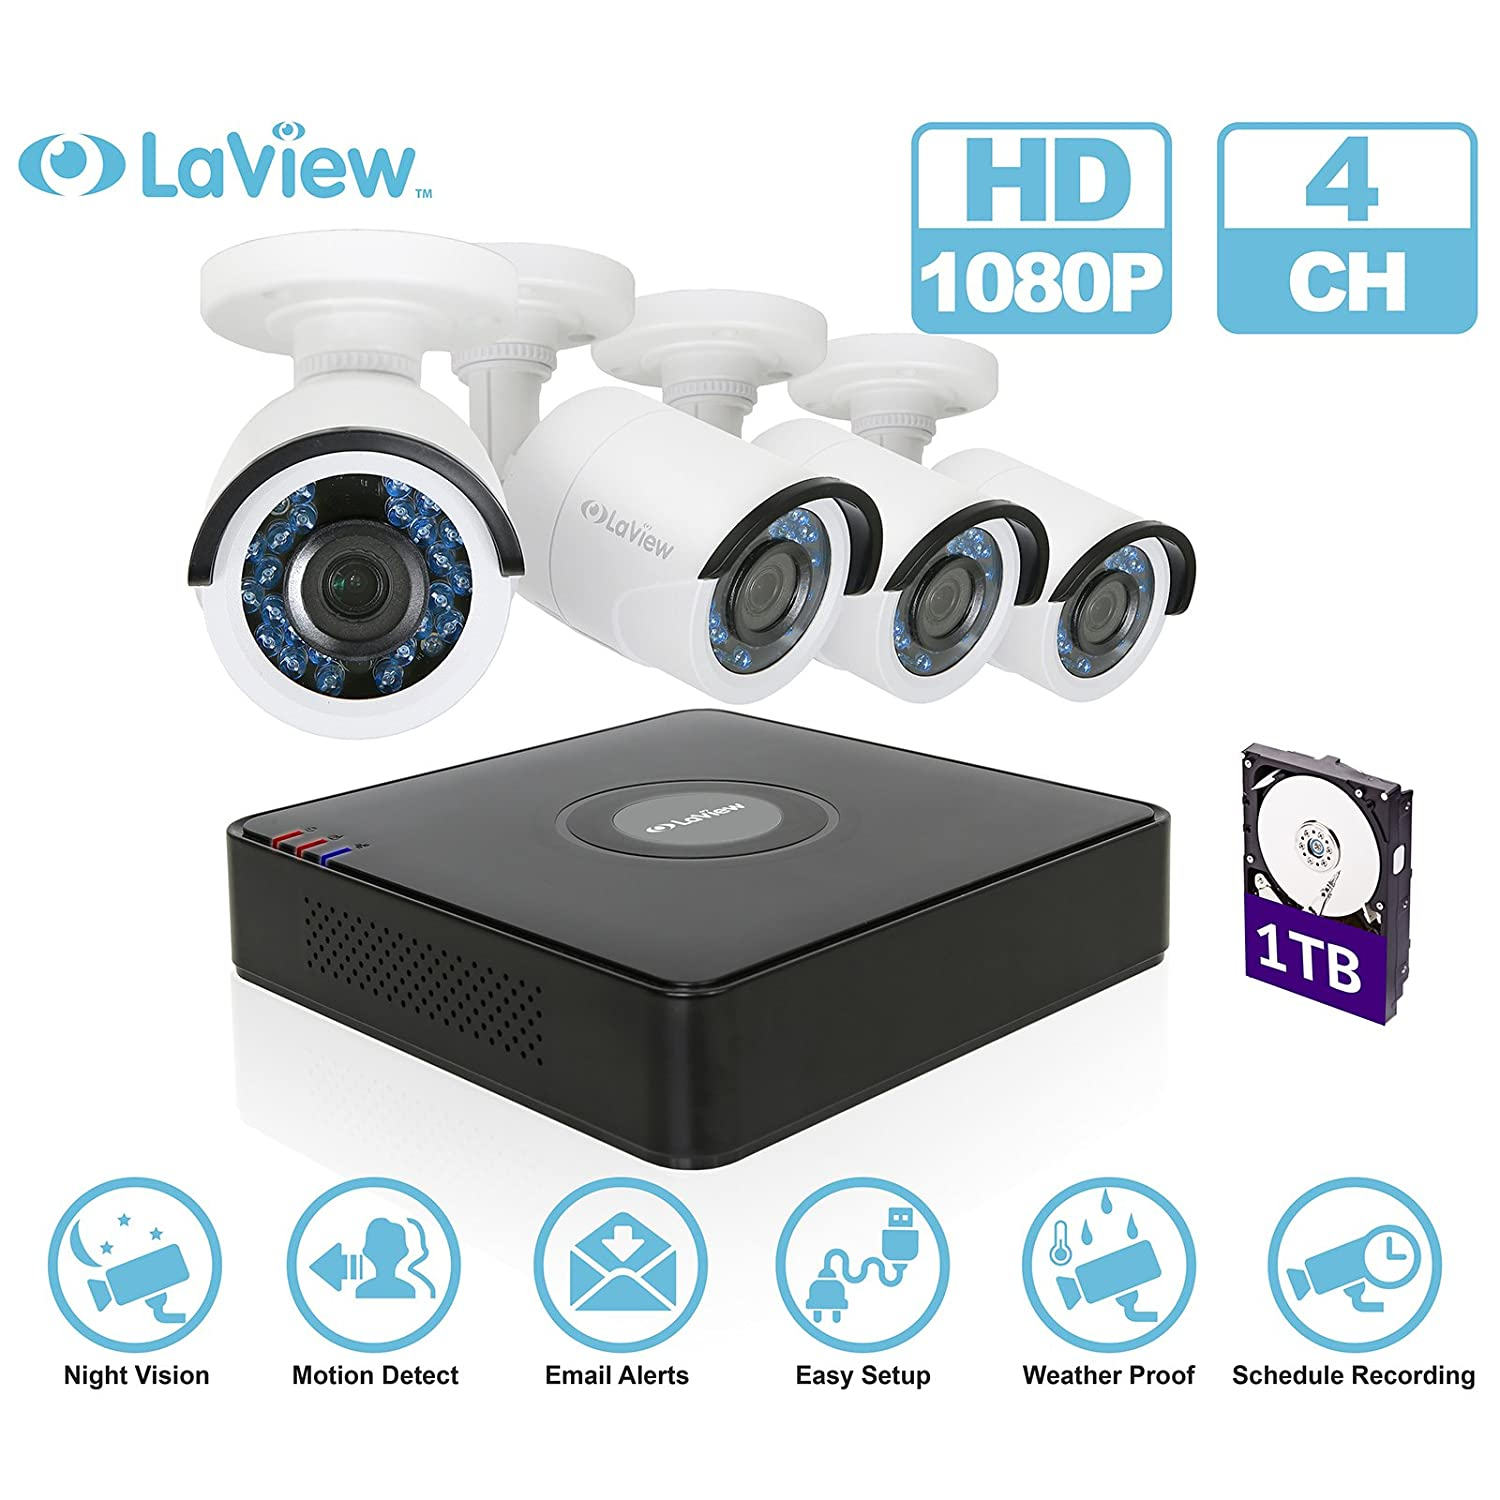 A Place To Call Home Complete Series 4 Camera Advance Pro Series Cctv Installation Cctv Laview 4 Channel Security Camera System, Hd-tvi Video Dvr Recorder,  Security Cameras Waterproof Ip66 Cctv Indoor Outdoor Security Camera With  Night Vision.